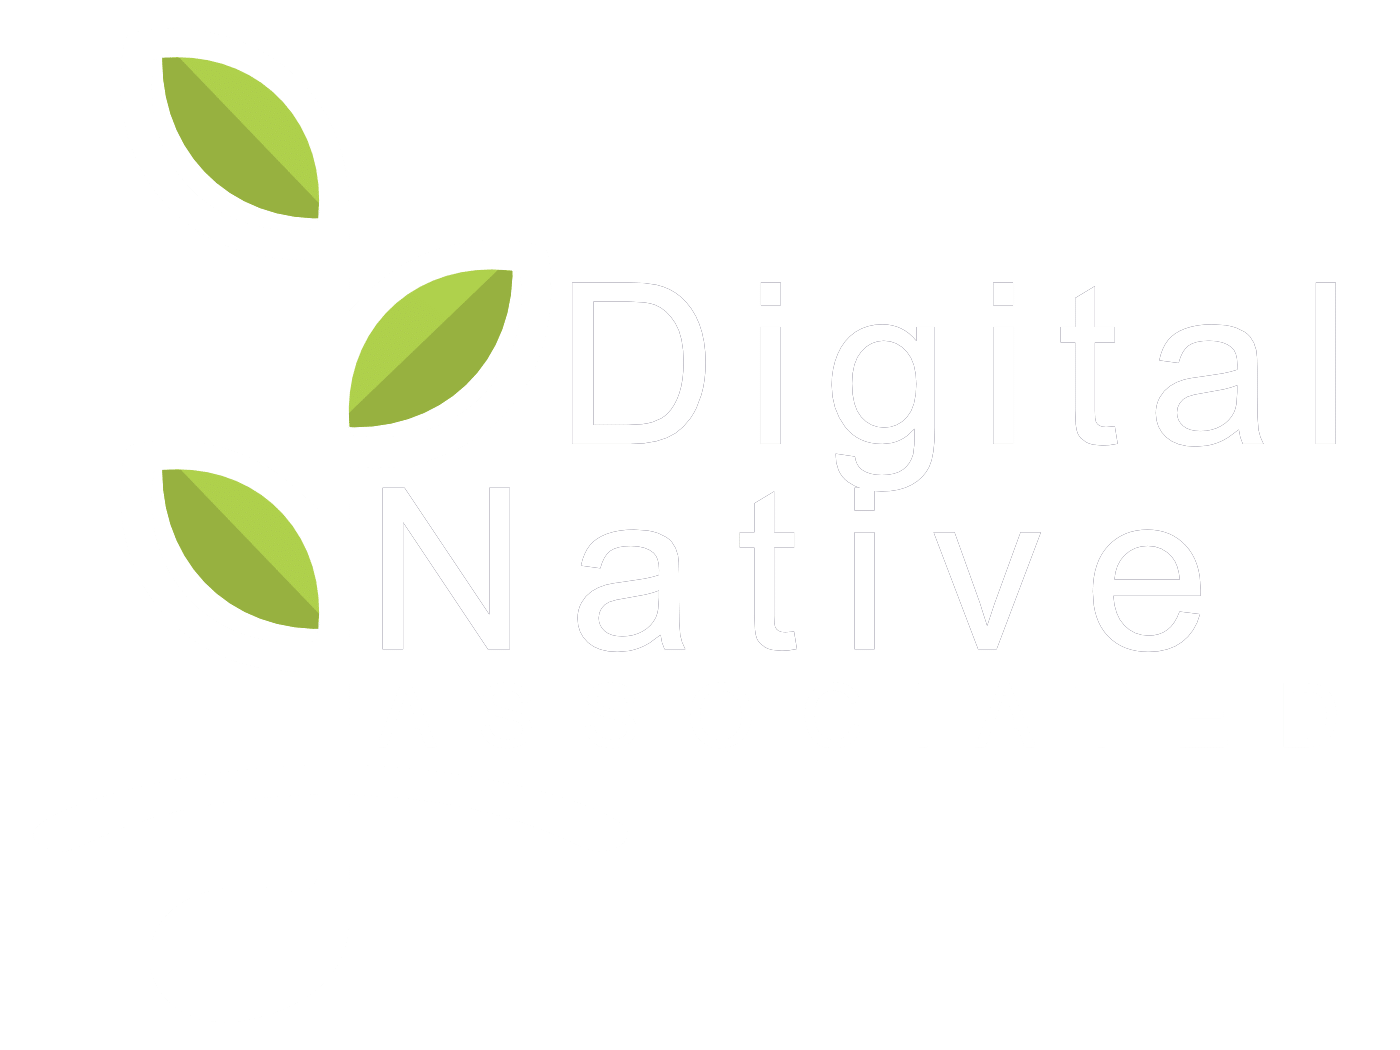 Digital Native Associated